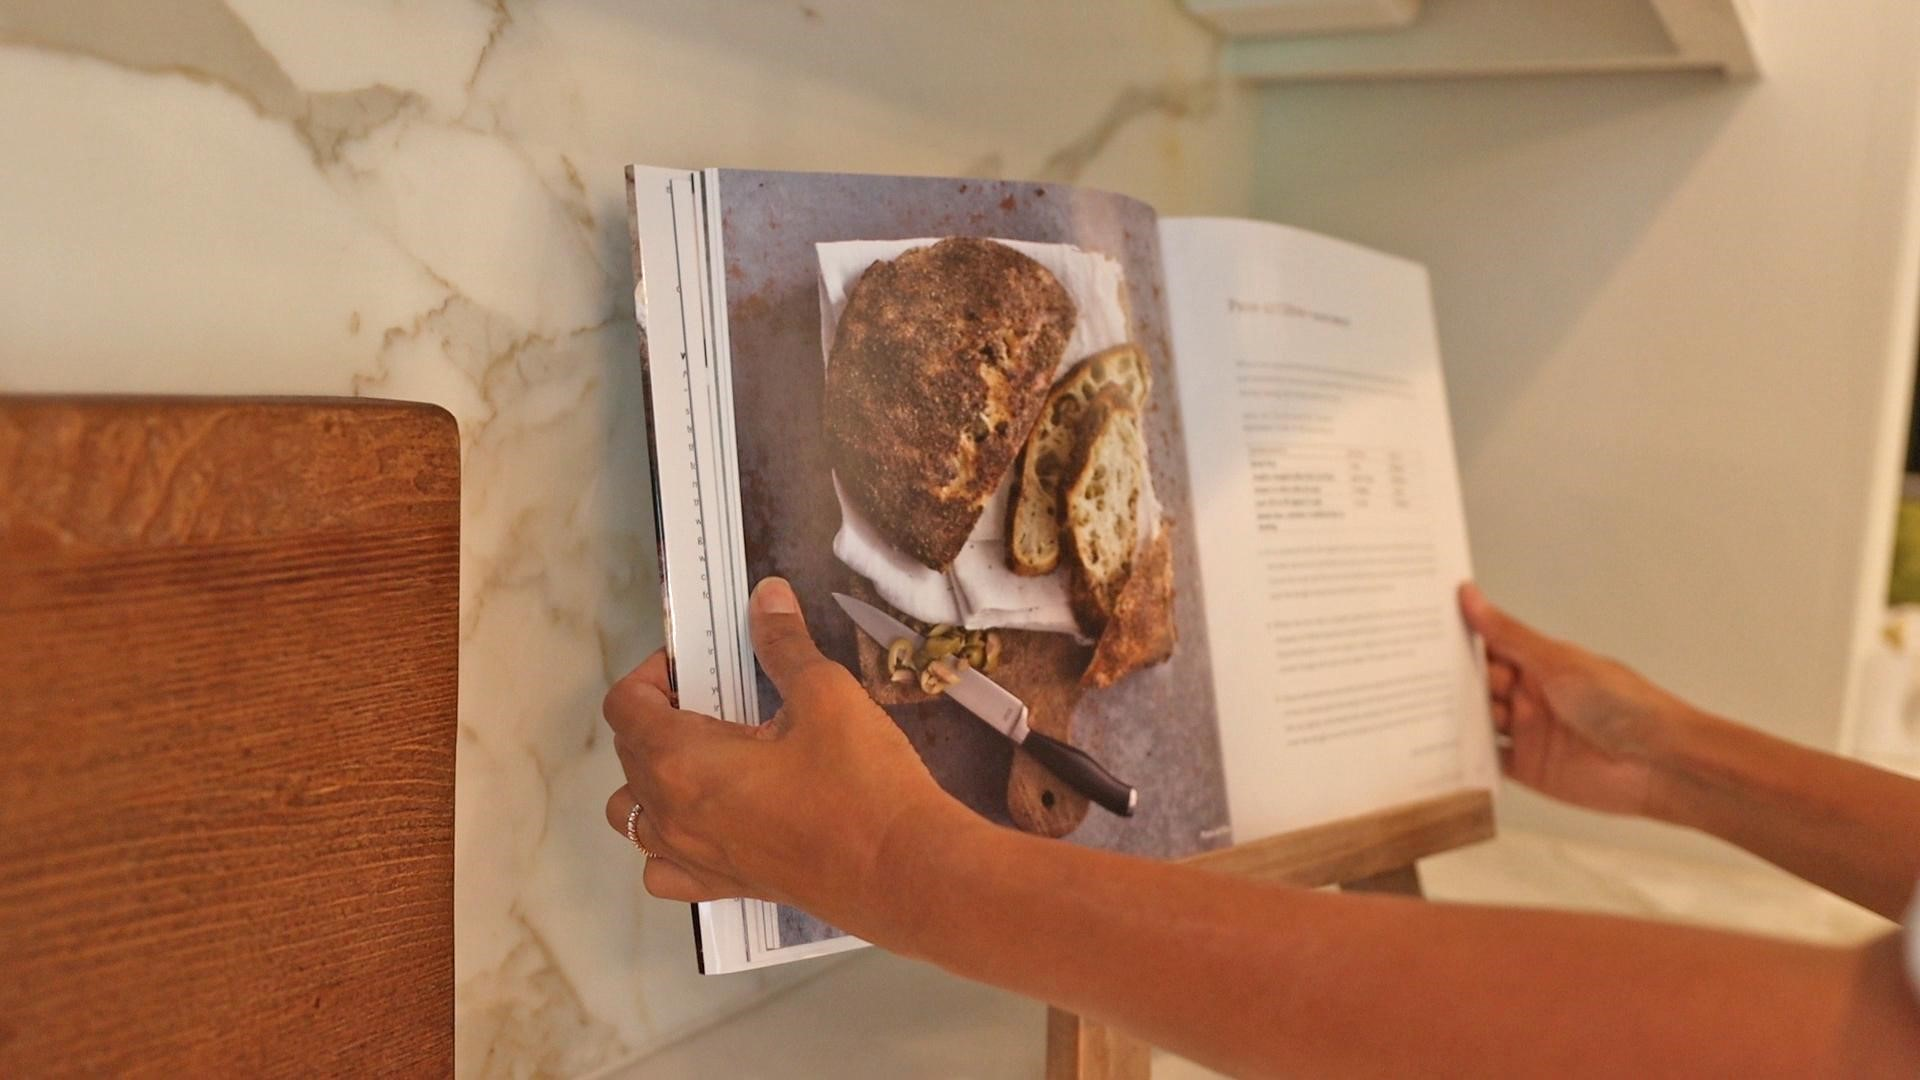 Propping a beautiful bread baking recipe book to display on an easel